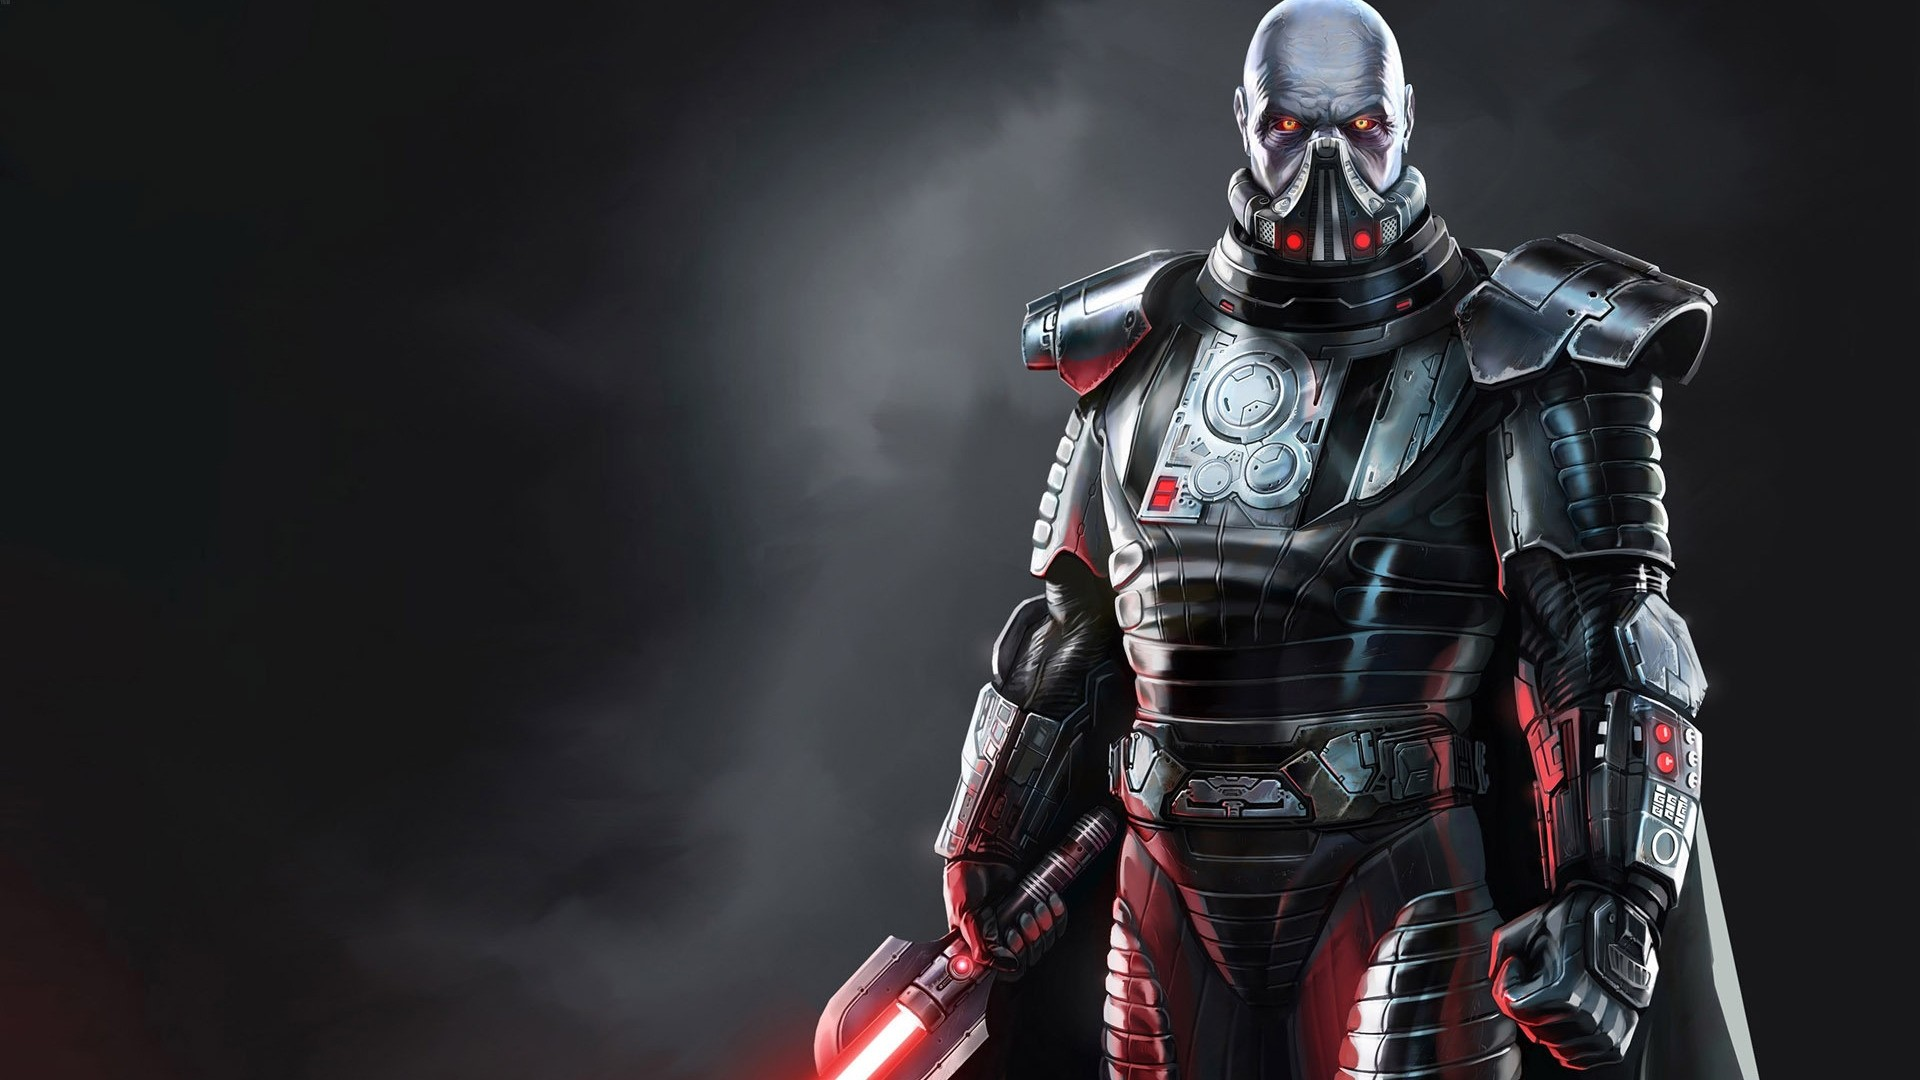 1920x1080 ... fiction wallpaper hd star wars sith wallpapers high definition ...